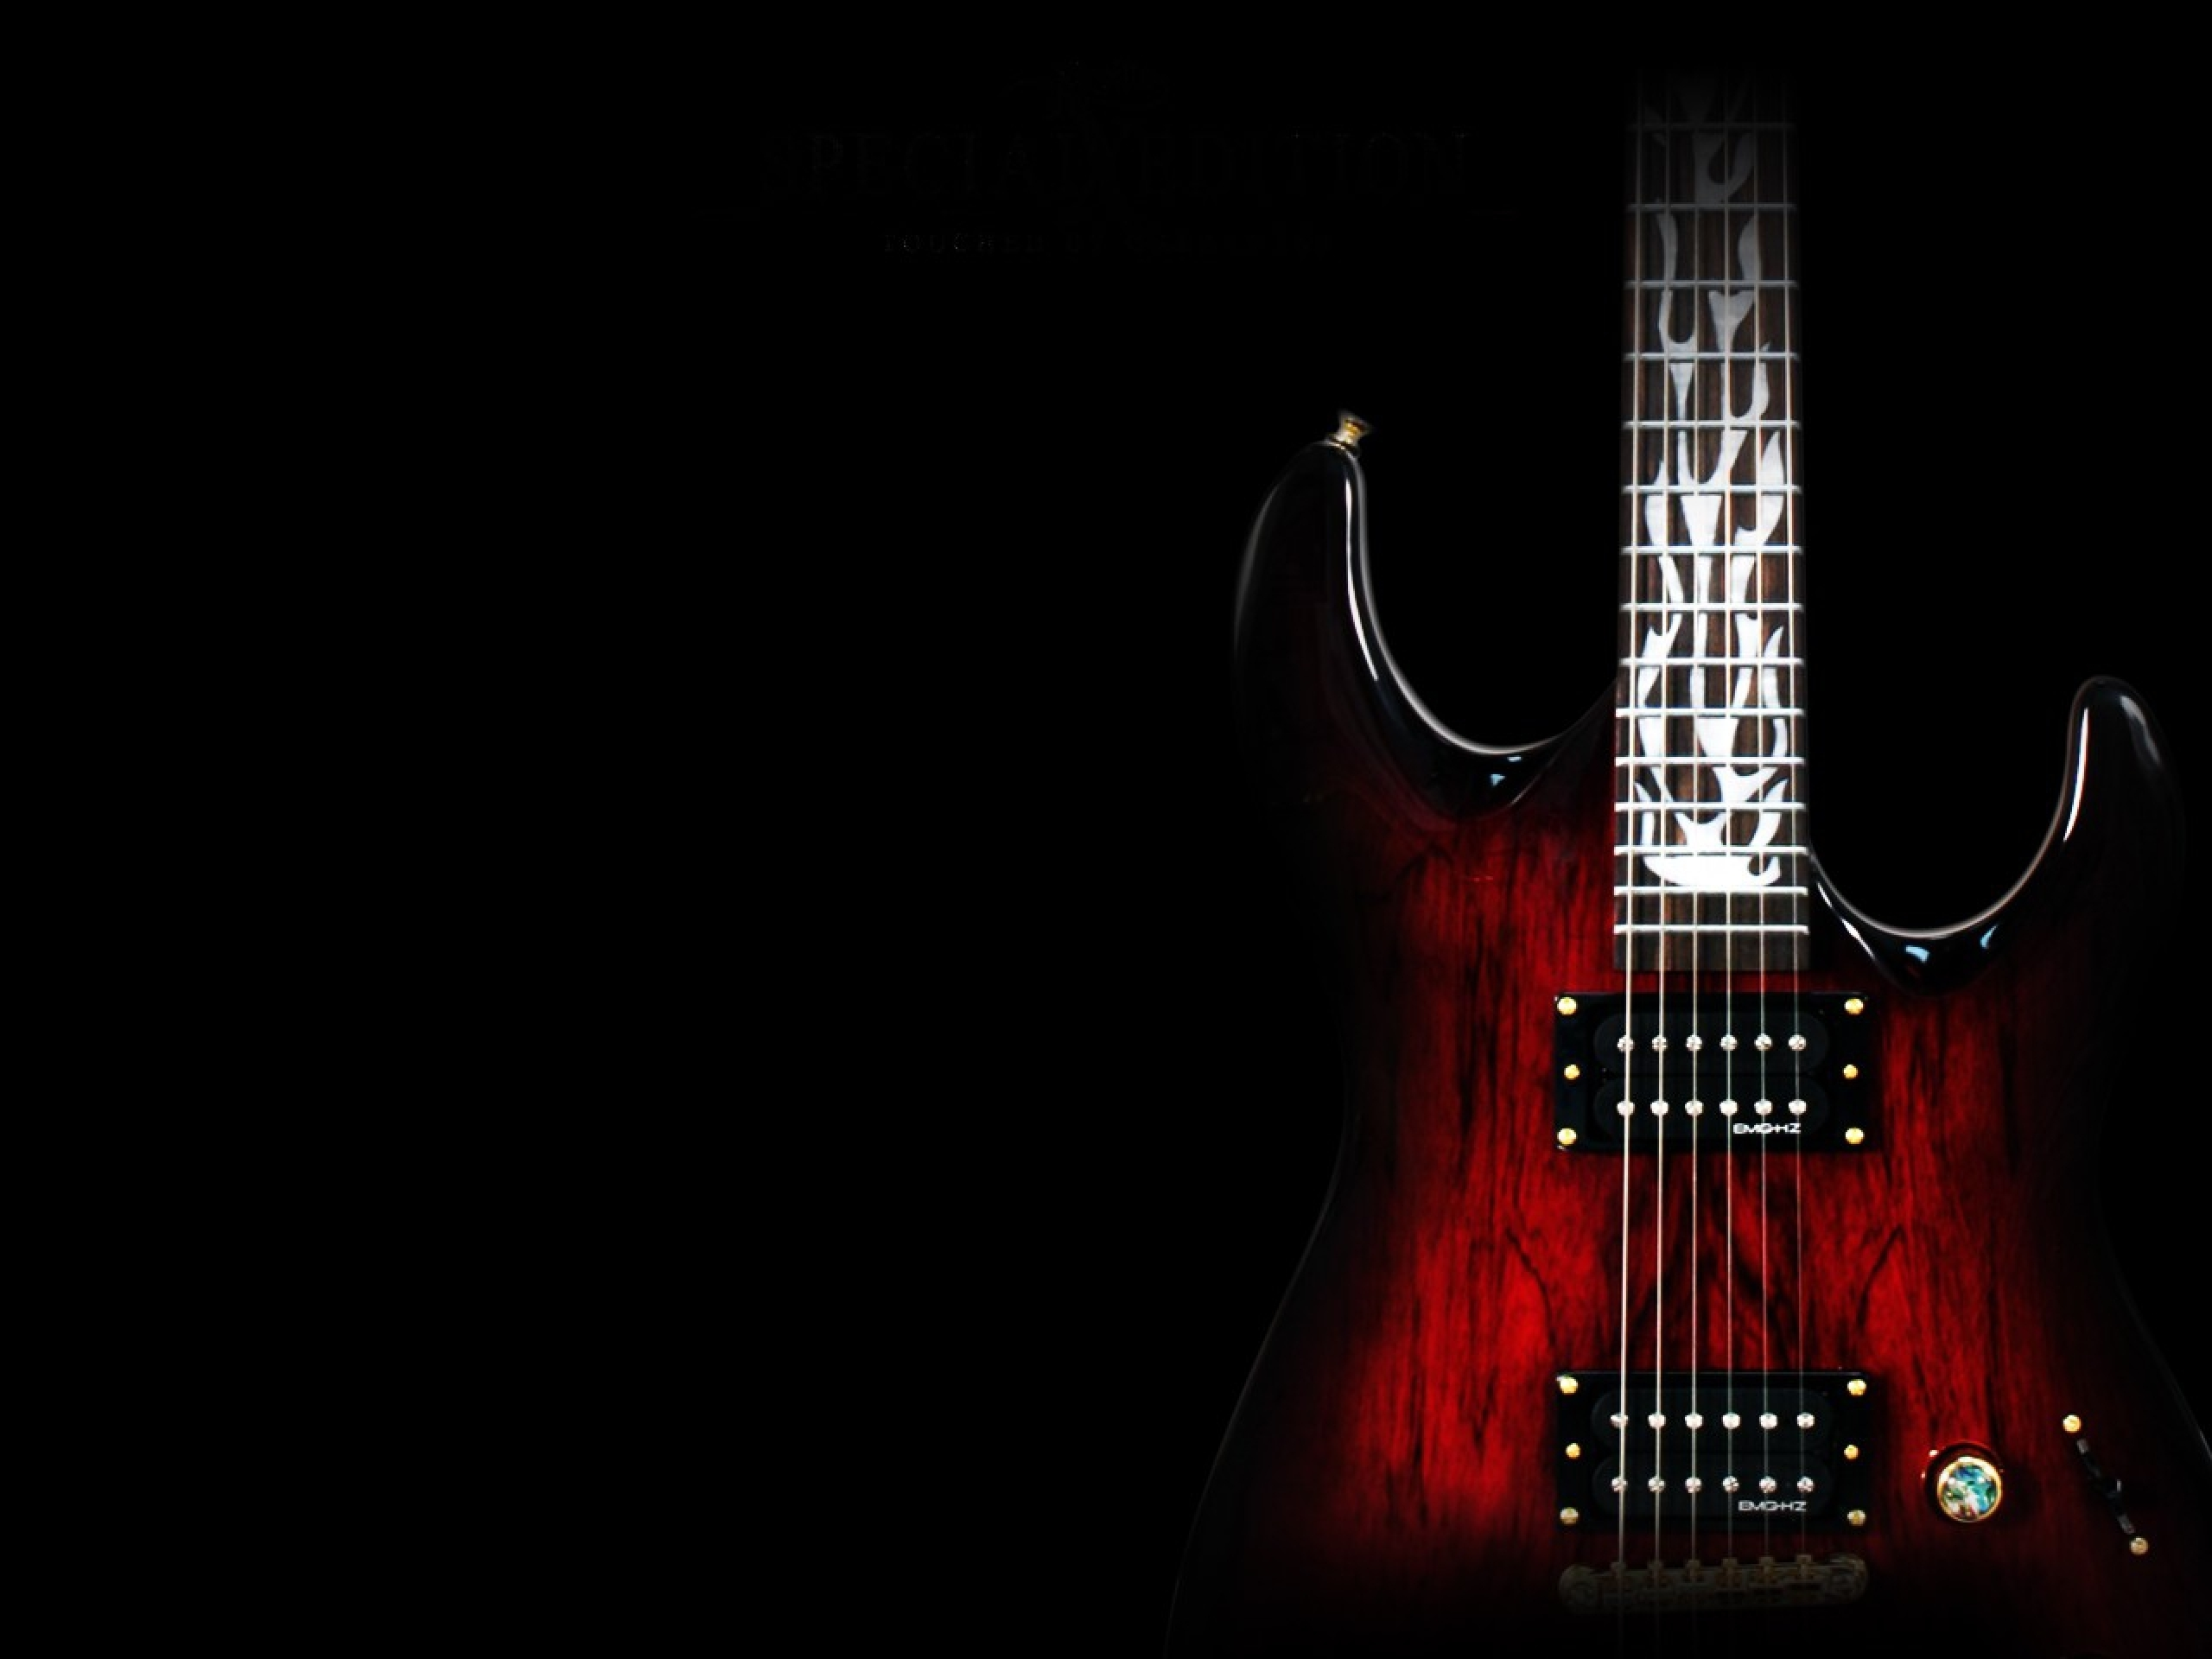 Download Wallpapers Download 2560x1920 3d Abstract Guitar